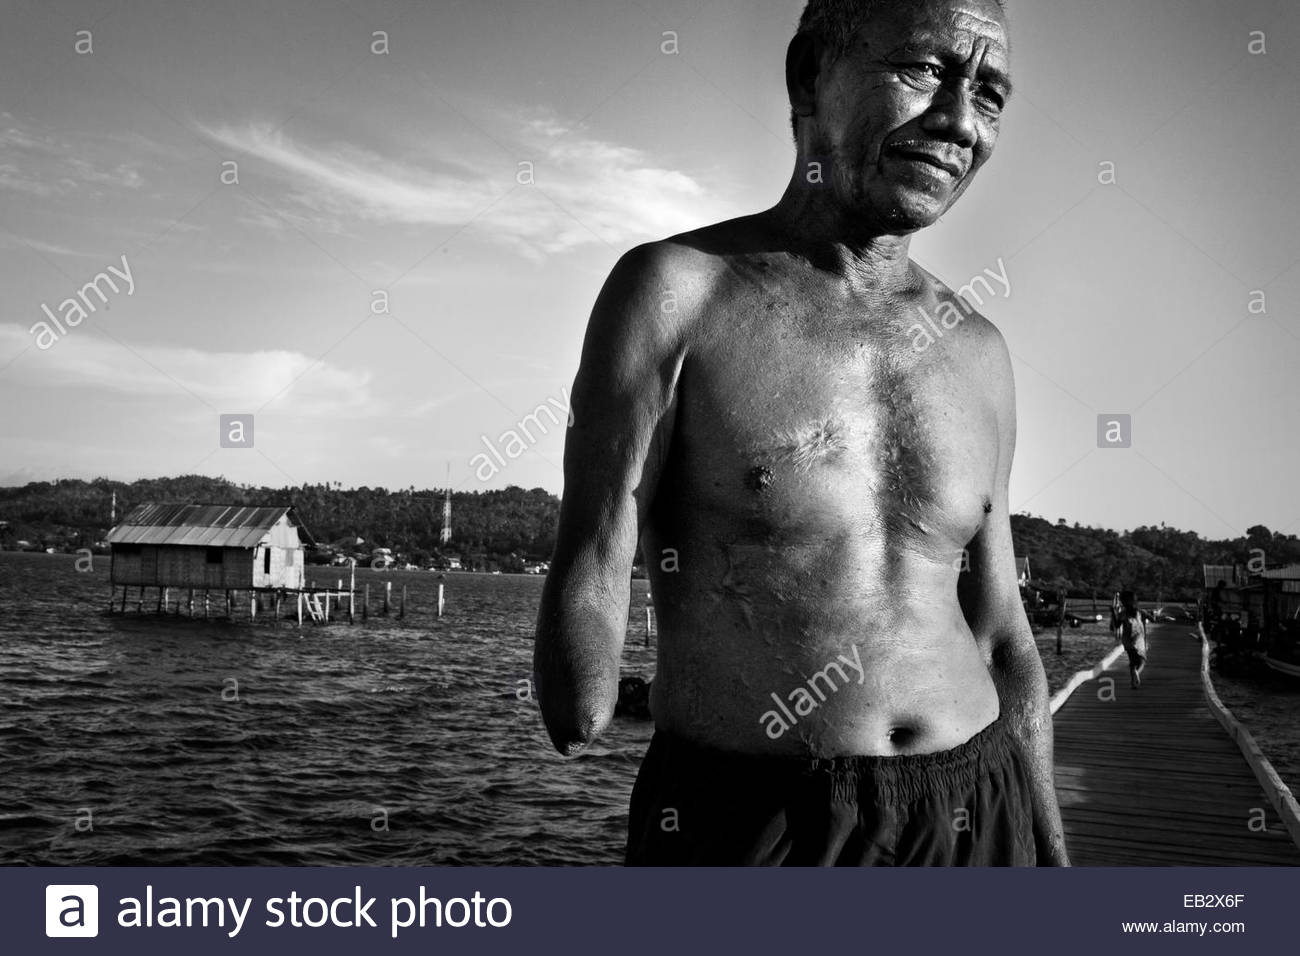 A Bajo man who lost his arm and blew up most of his stomach in a bomb fishing accident. - Stock Image